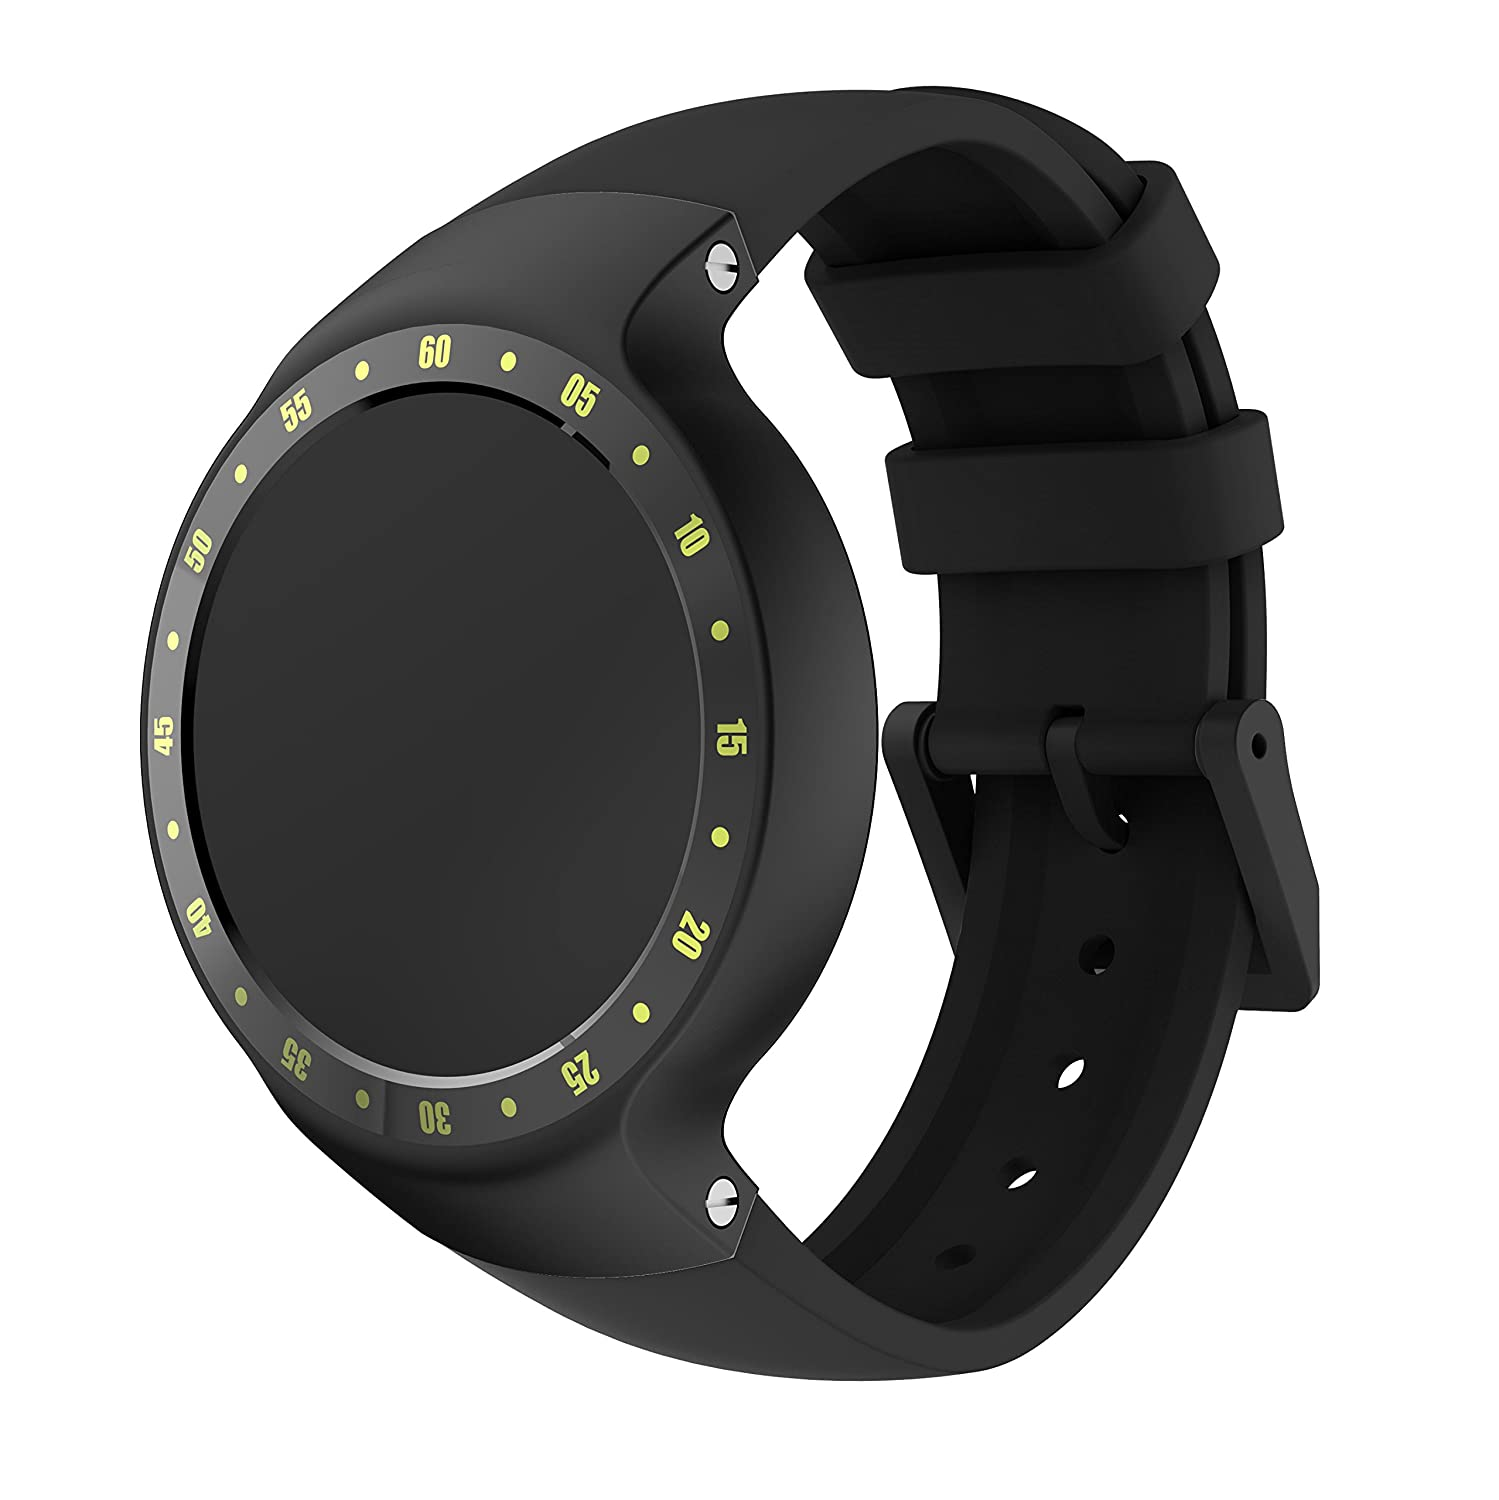 Amazon.com: For Ticwatch S Watch Bands, Stylish Silicone ...